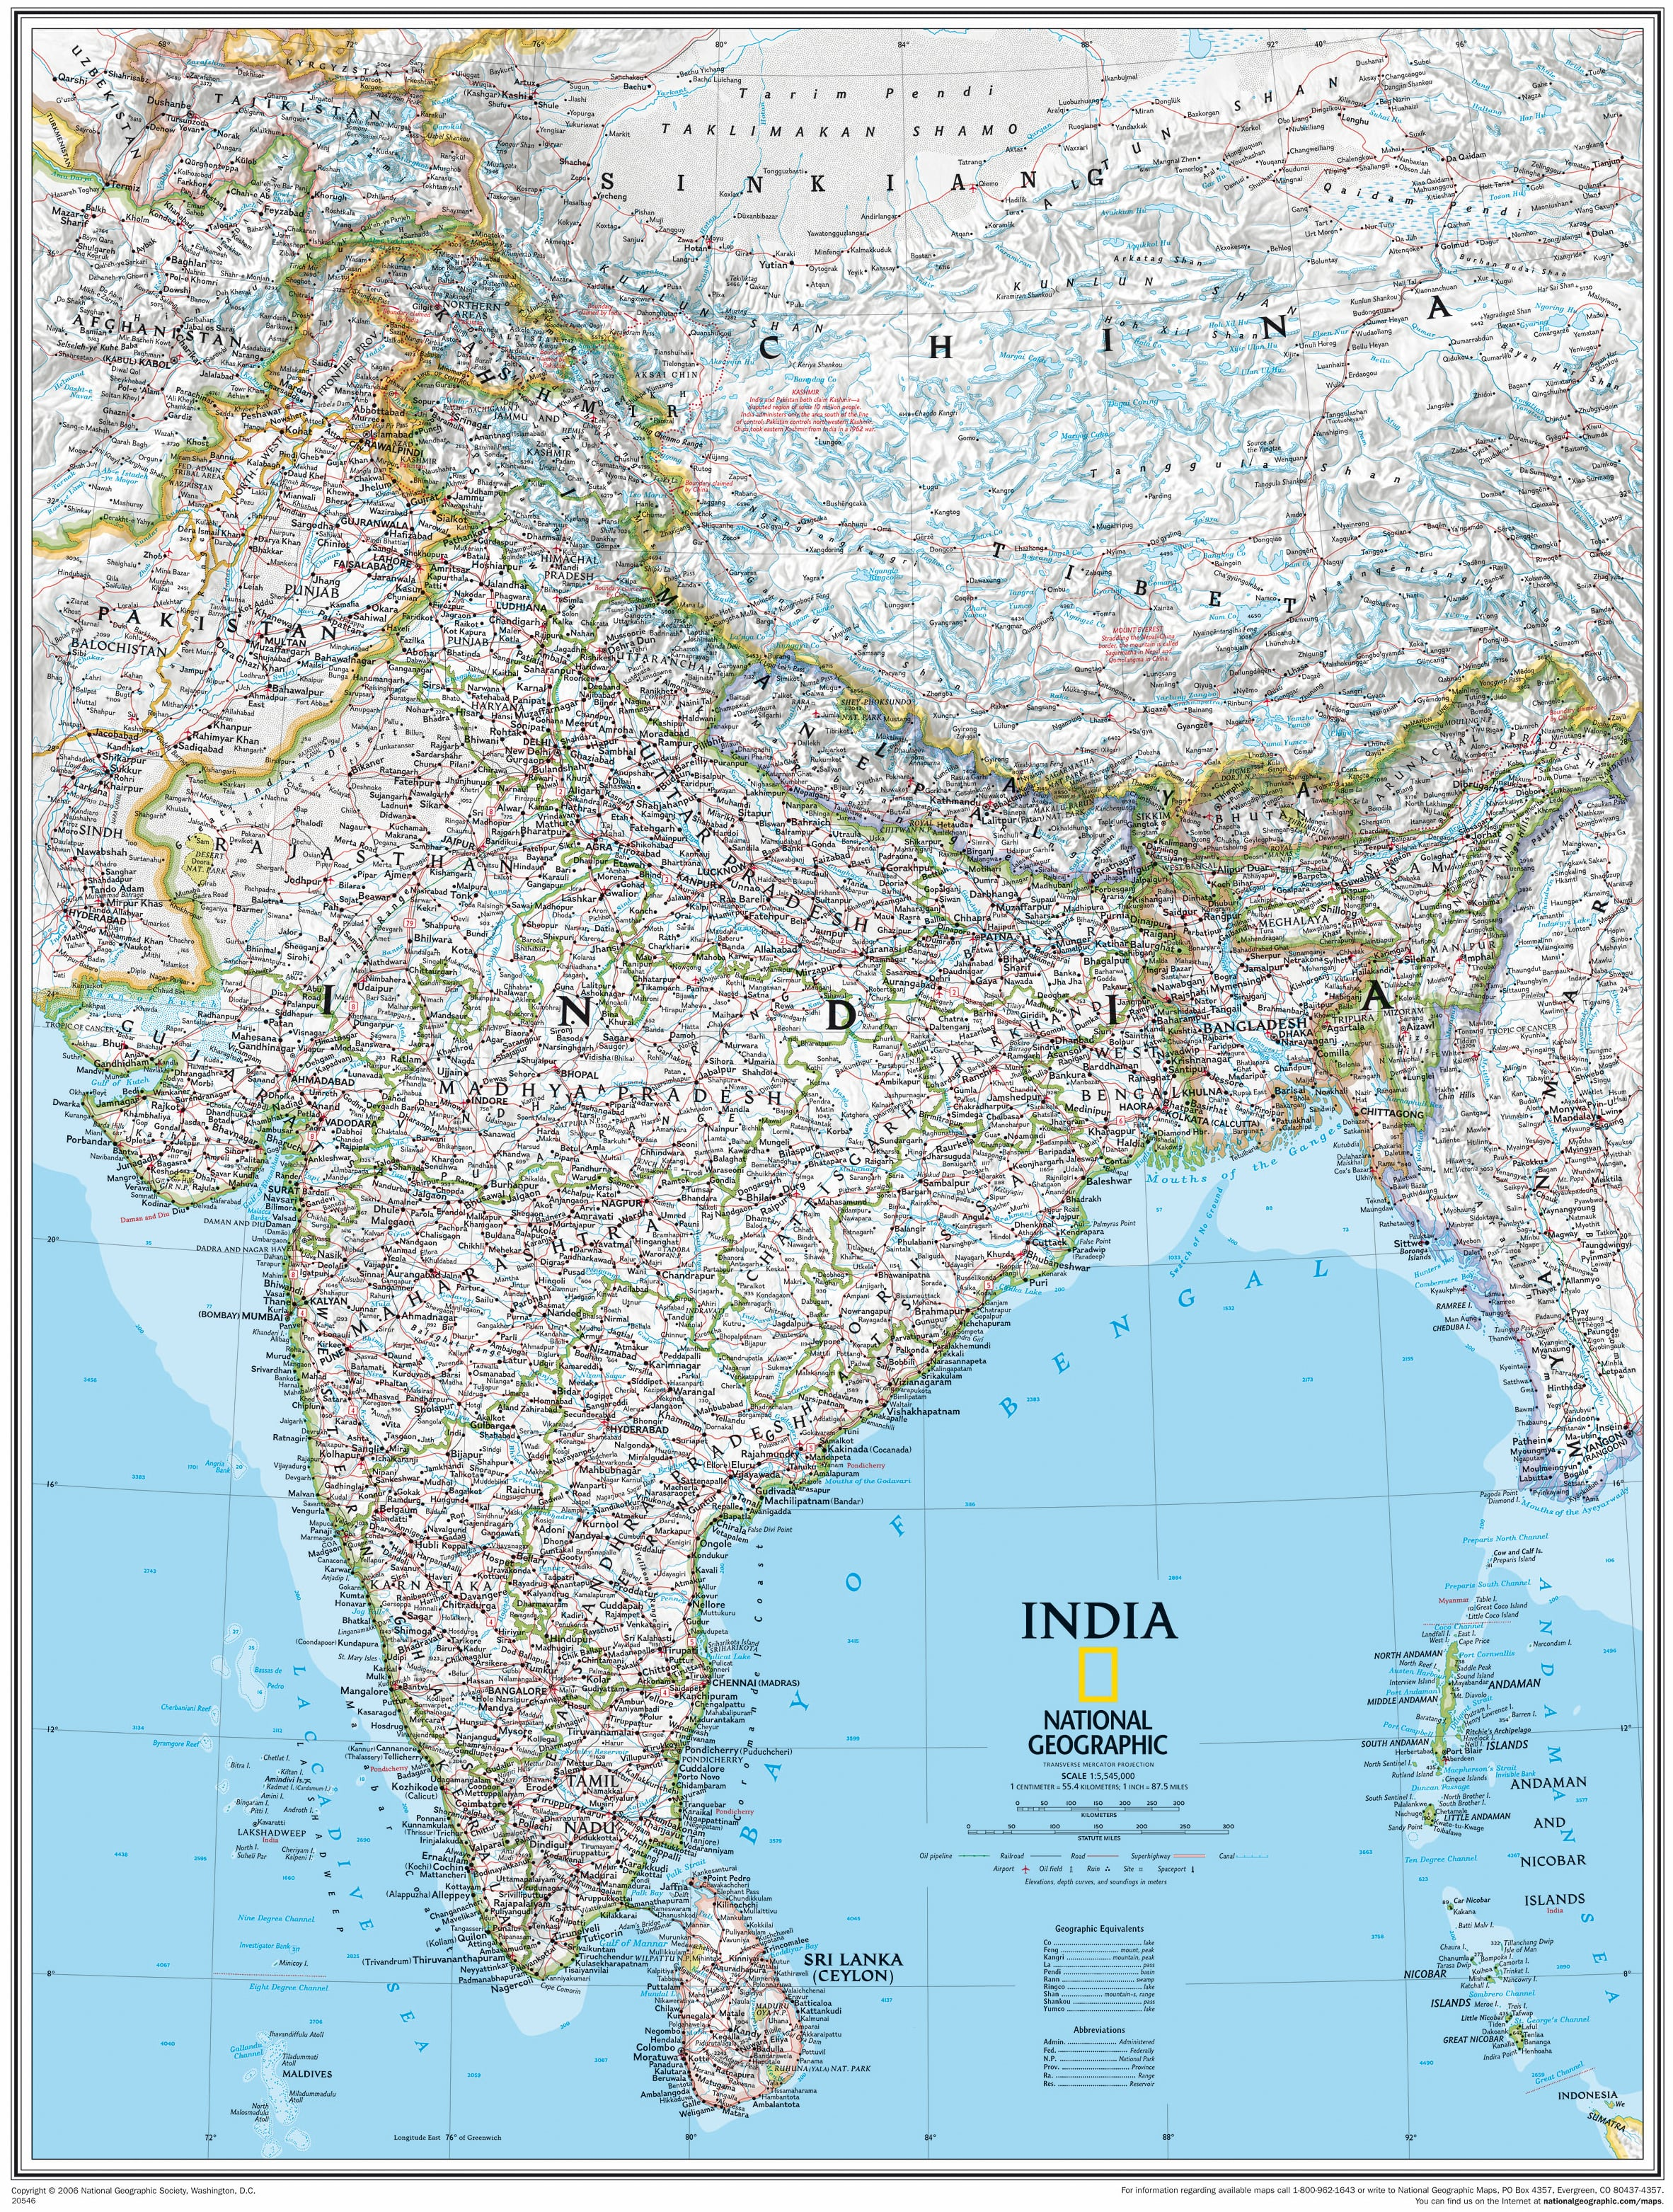 India Wall Map 58 x 76cm - Asia Countries maps - Asia - Wall Maps